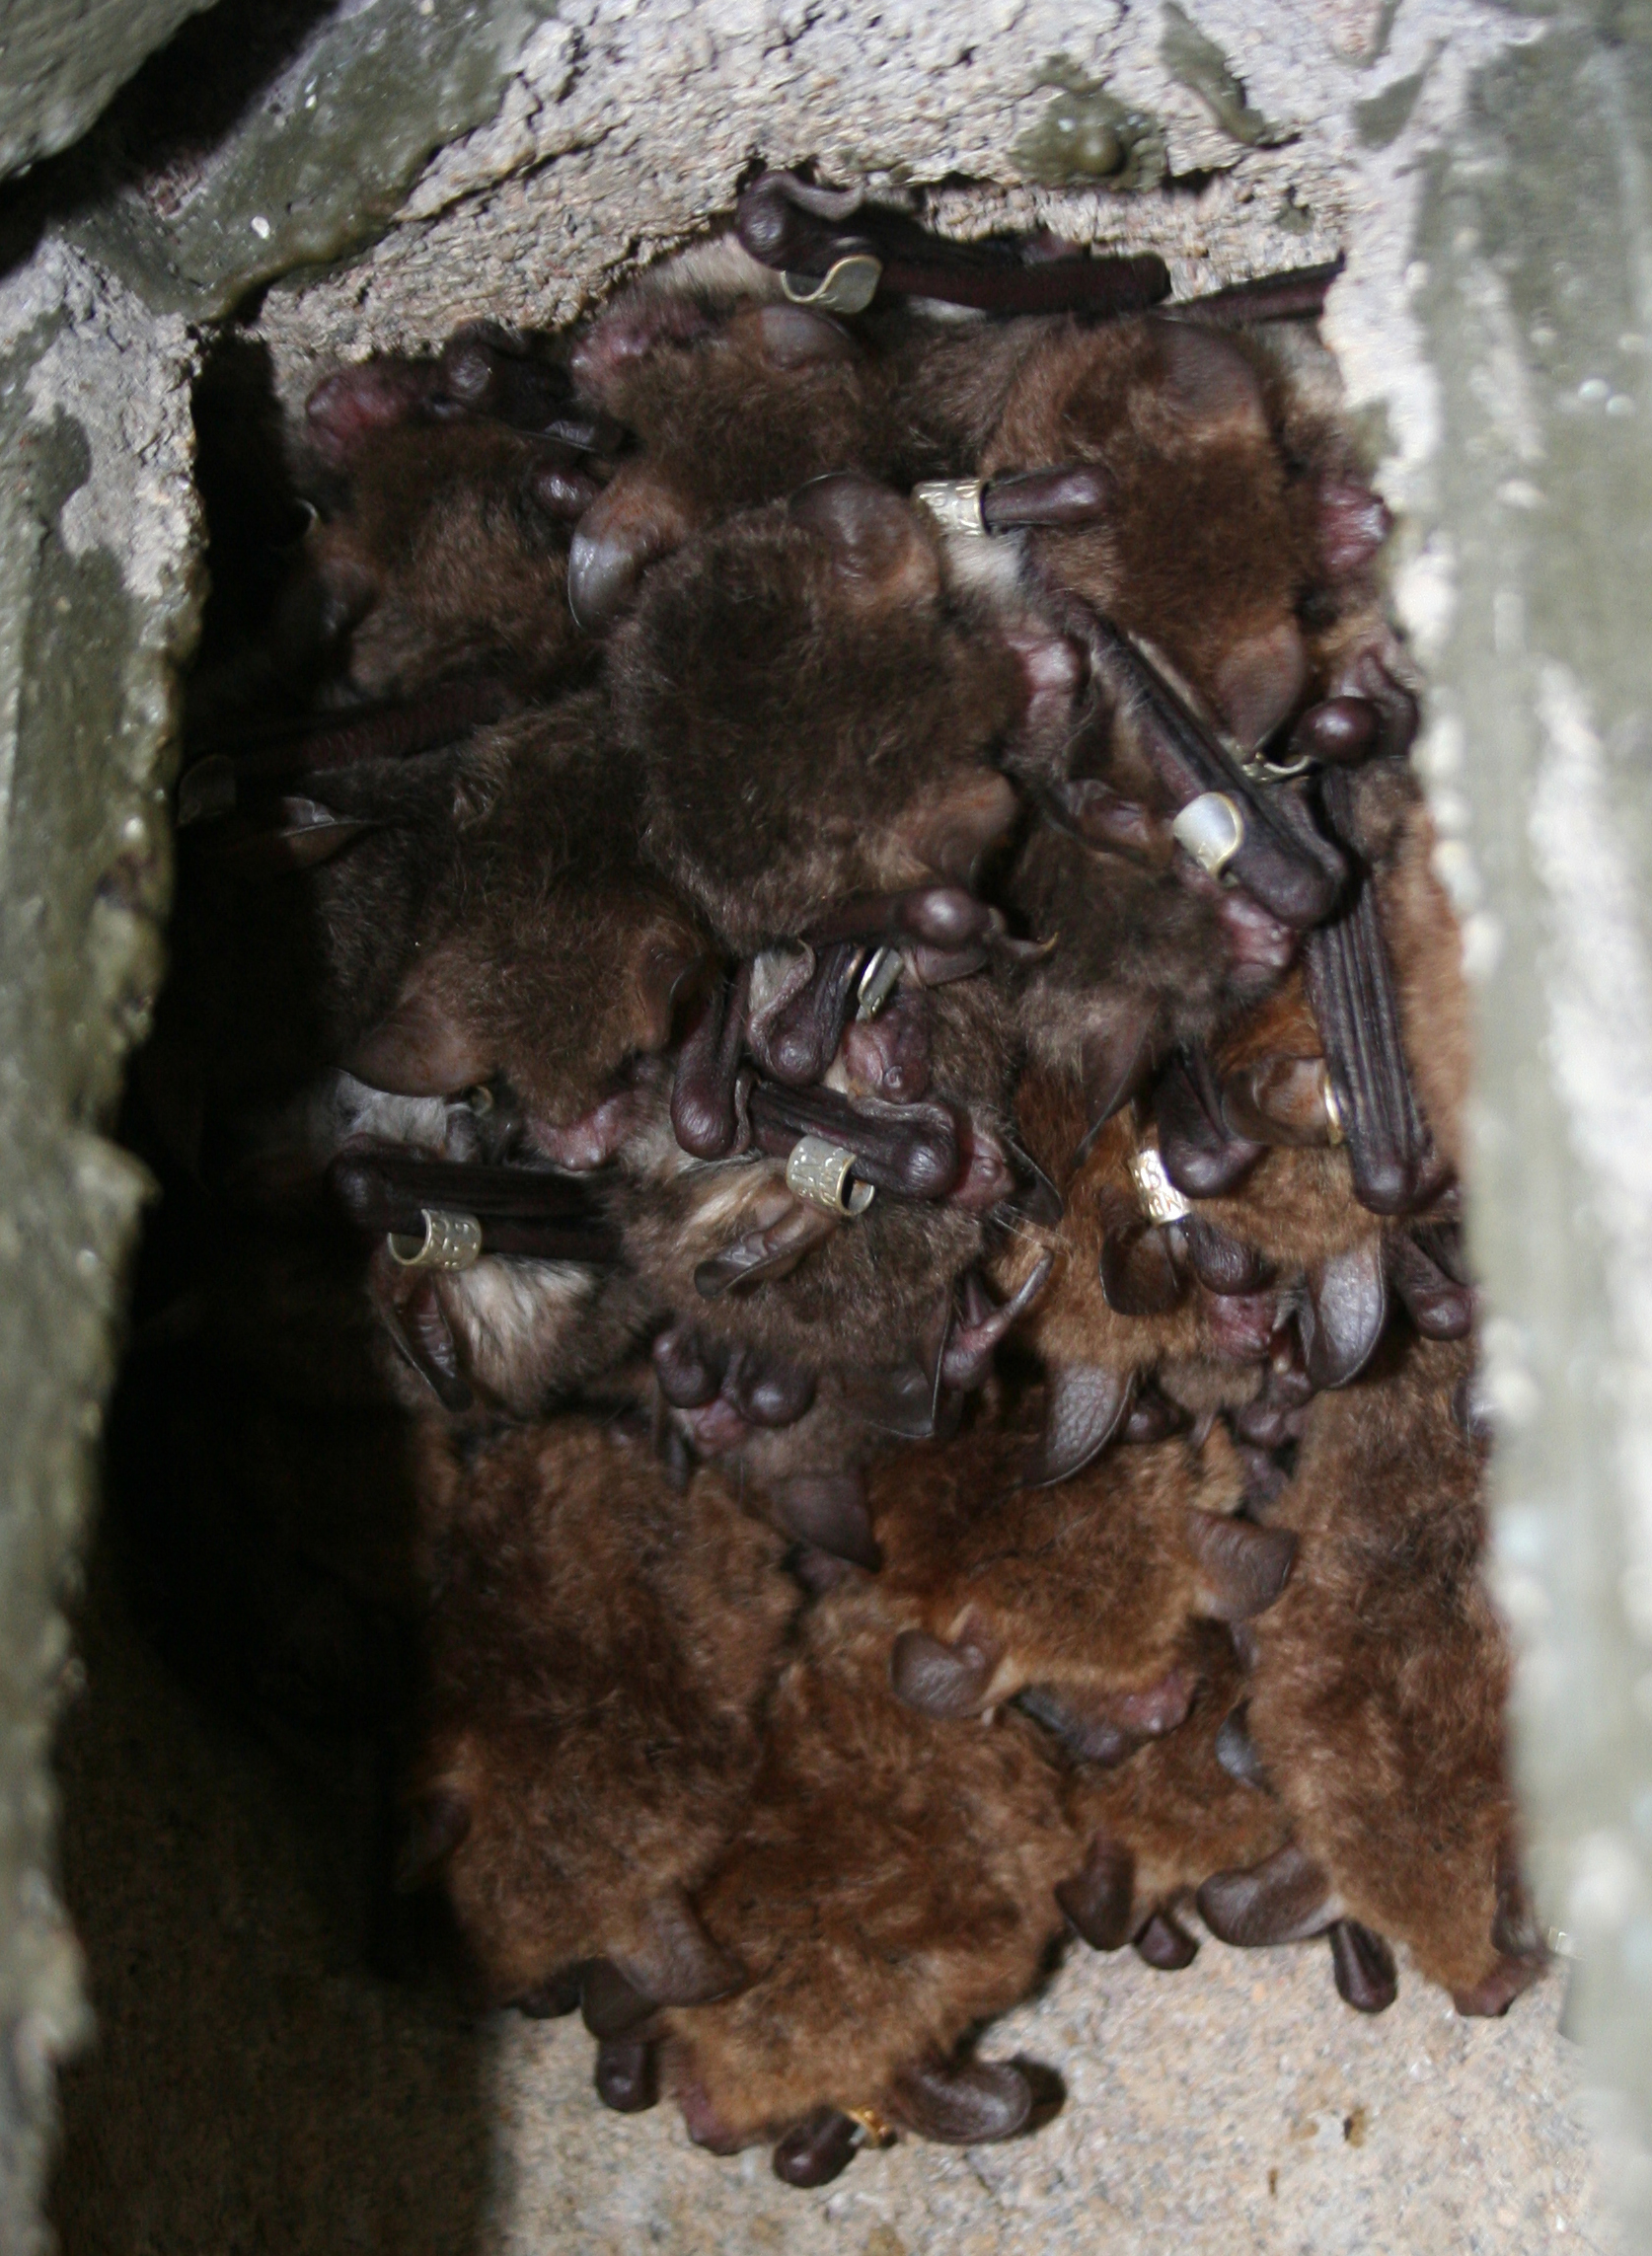 Bats at Wytham Woods, Oxfordshire. Photo: Tom August